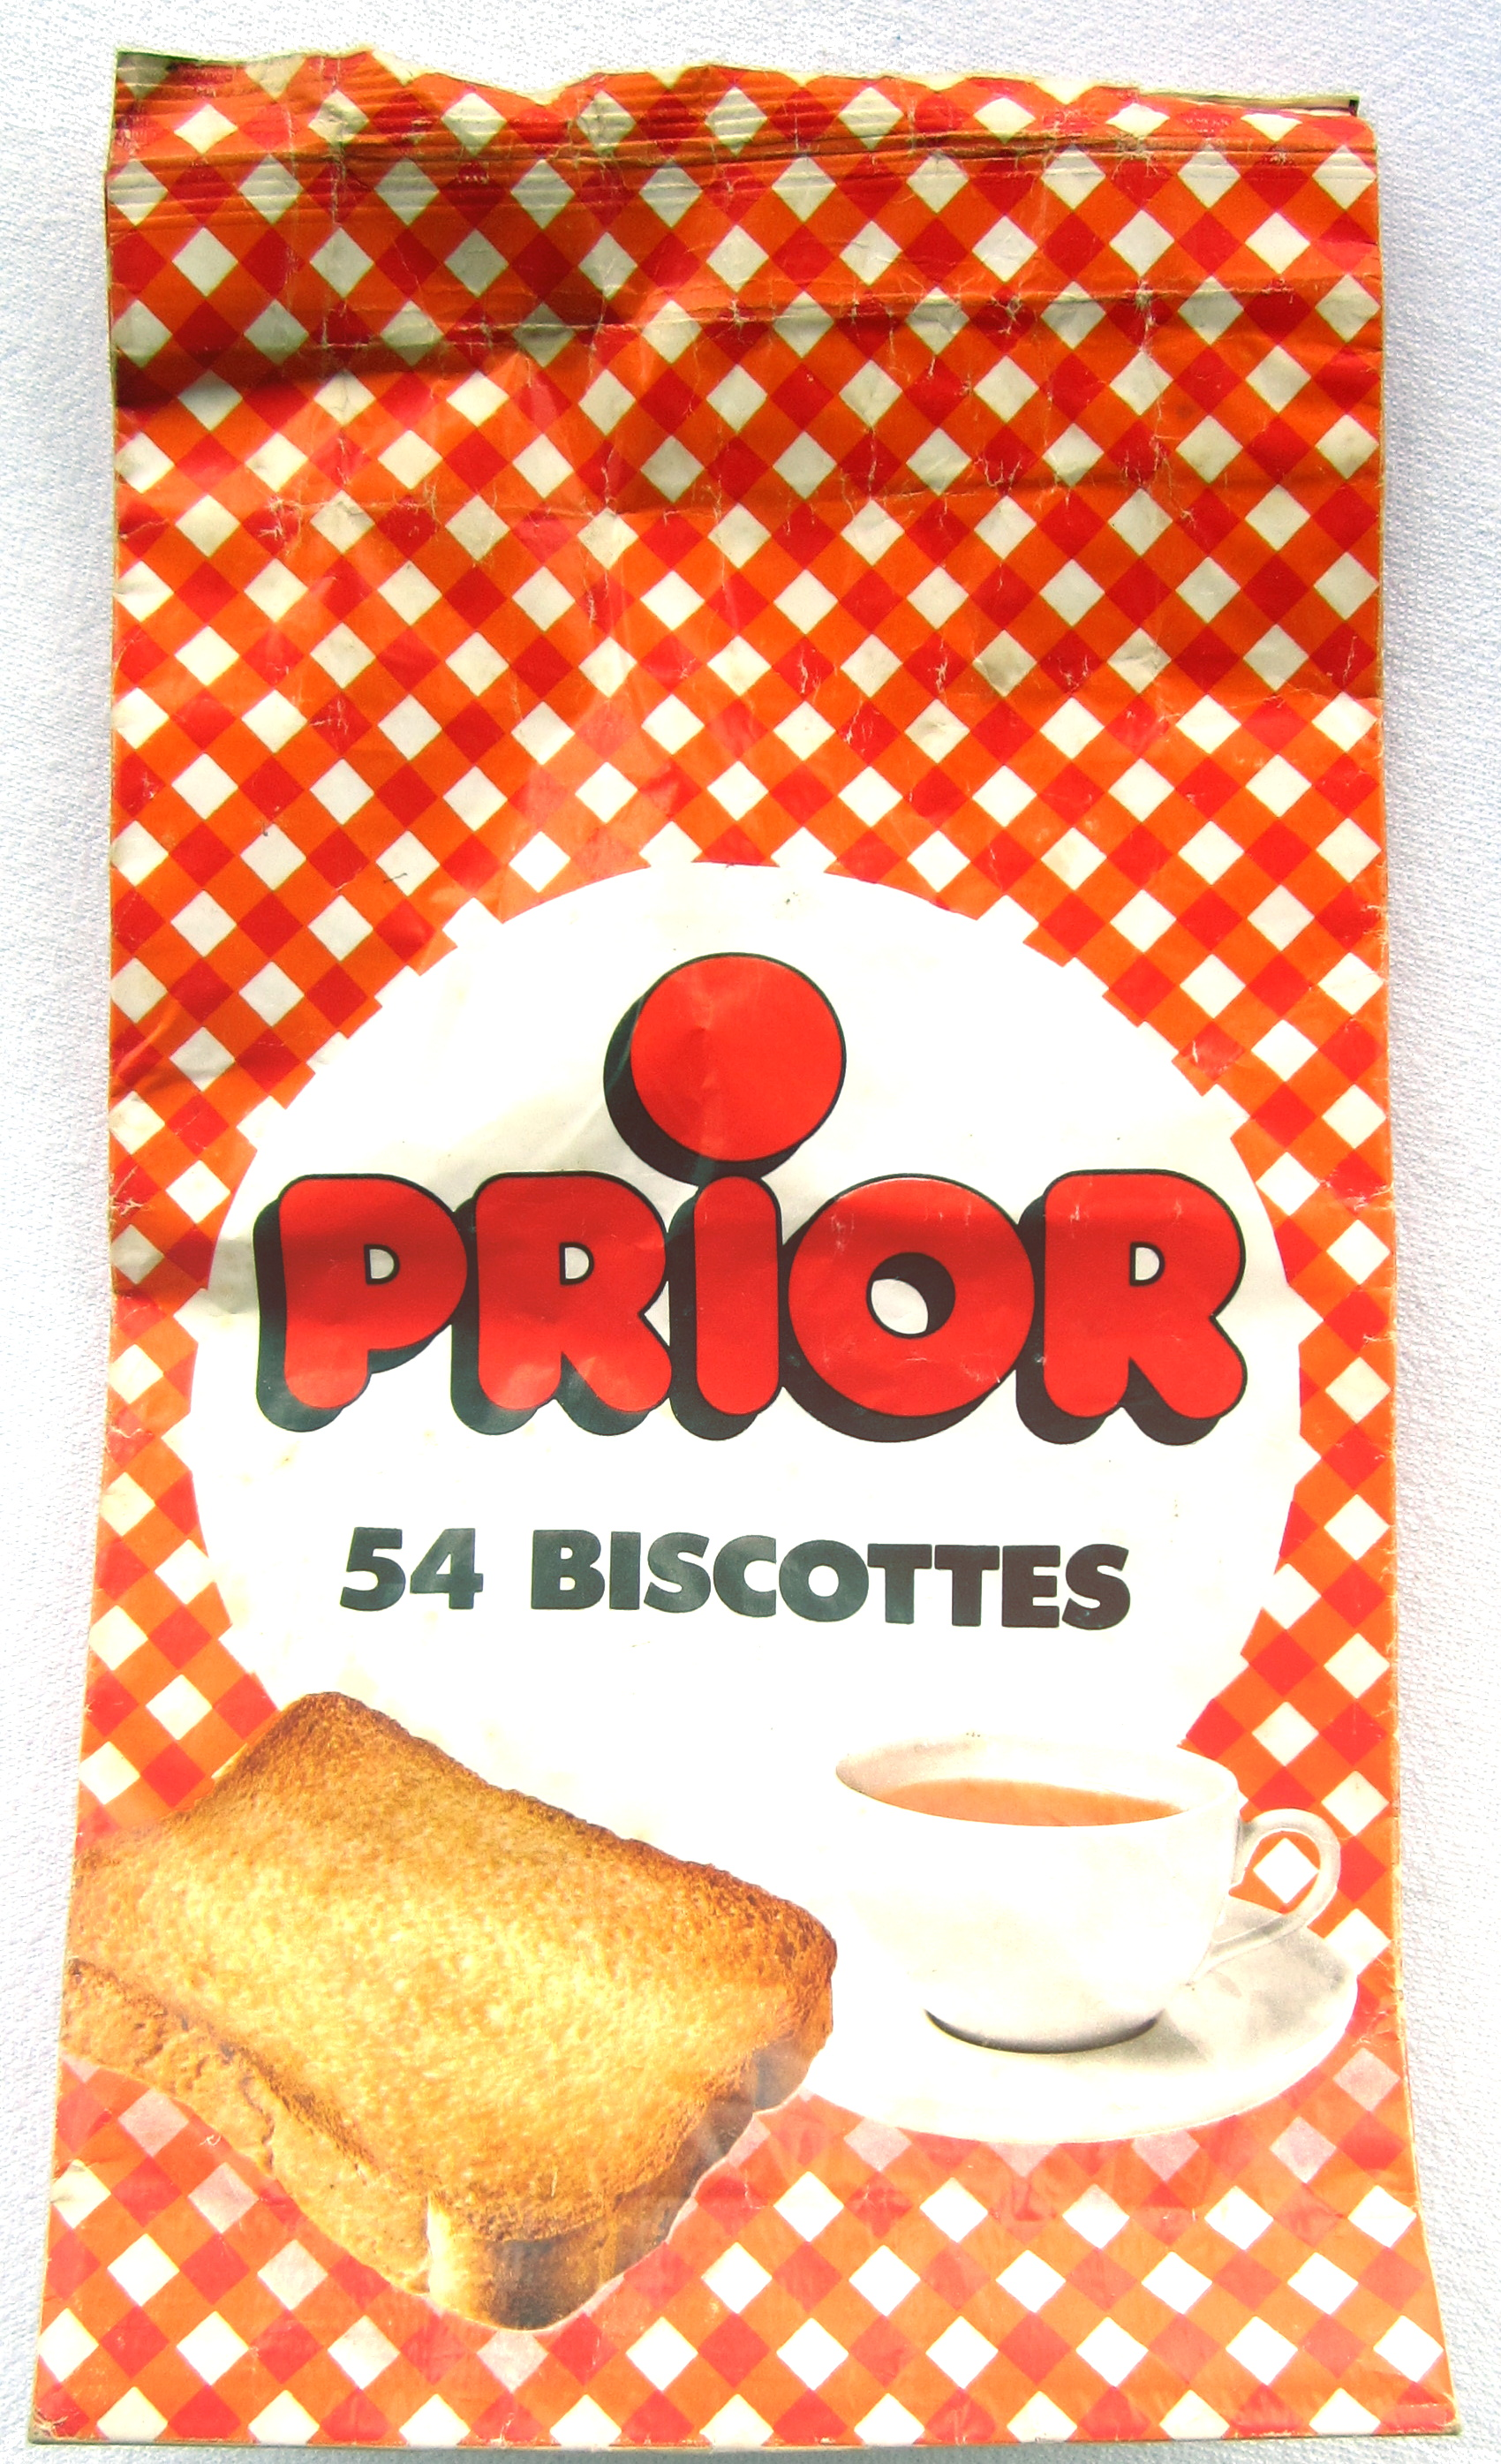 54 biscottes - Product